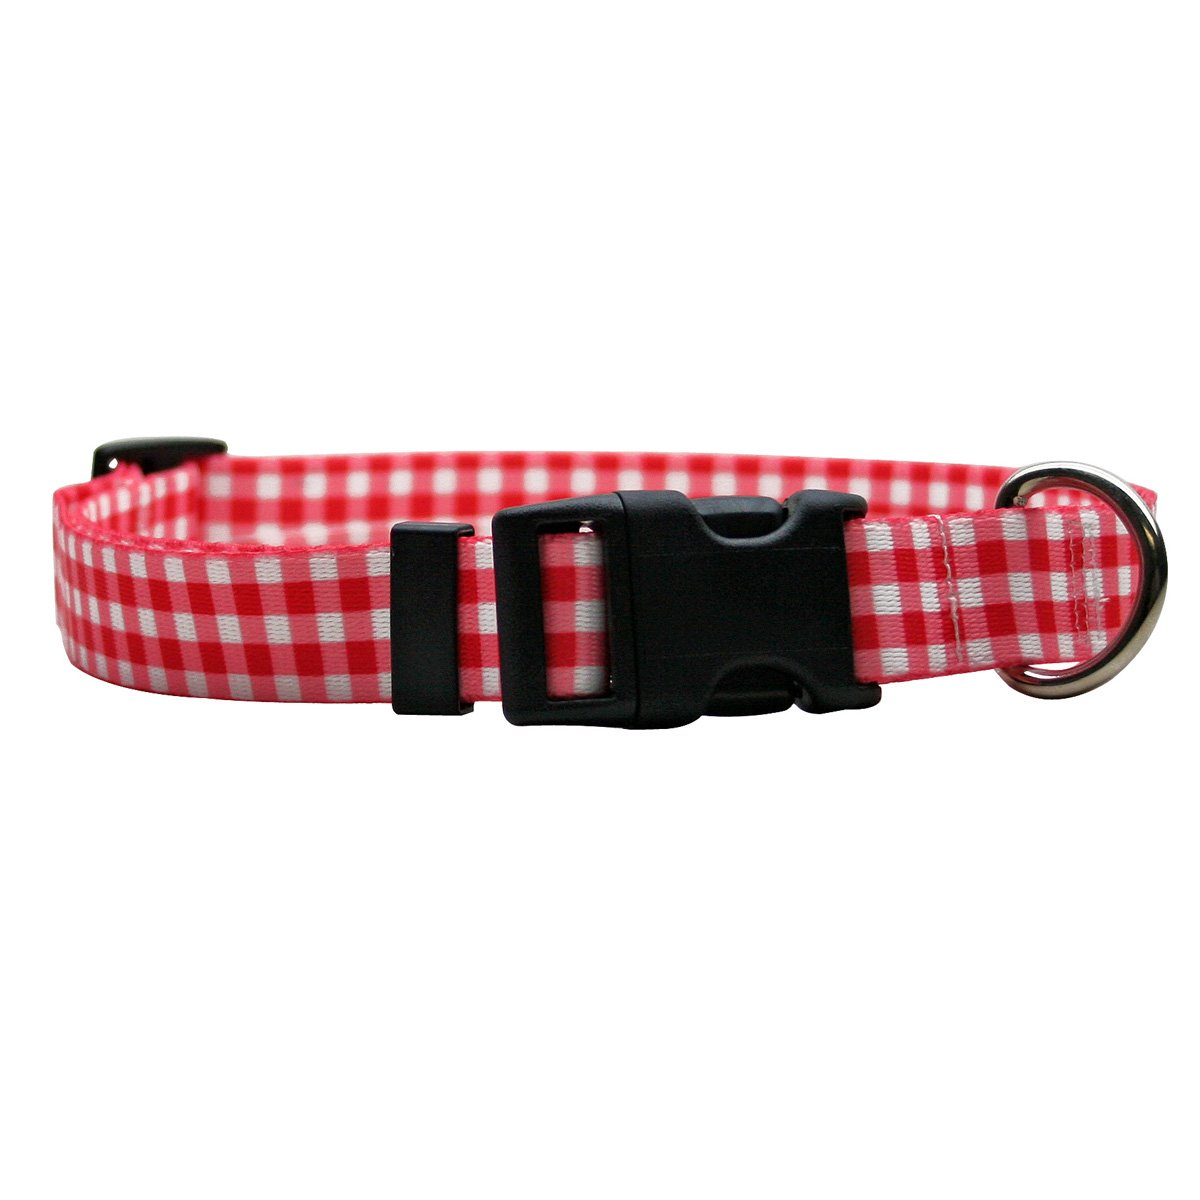 Yellow Dog Design Gingham Red Dog Collar 3/4'' Wide and Fits Neck 10 to 14'', Small